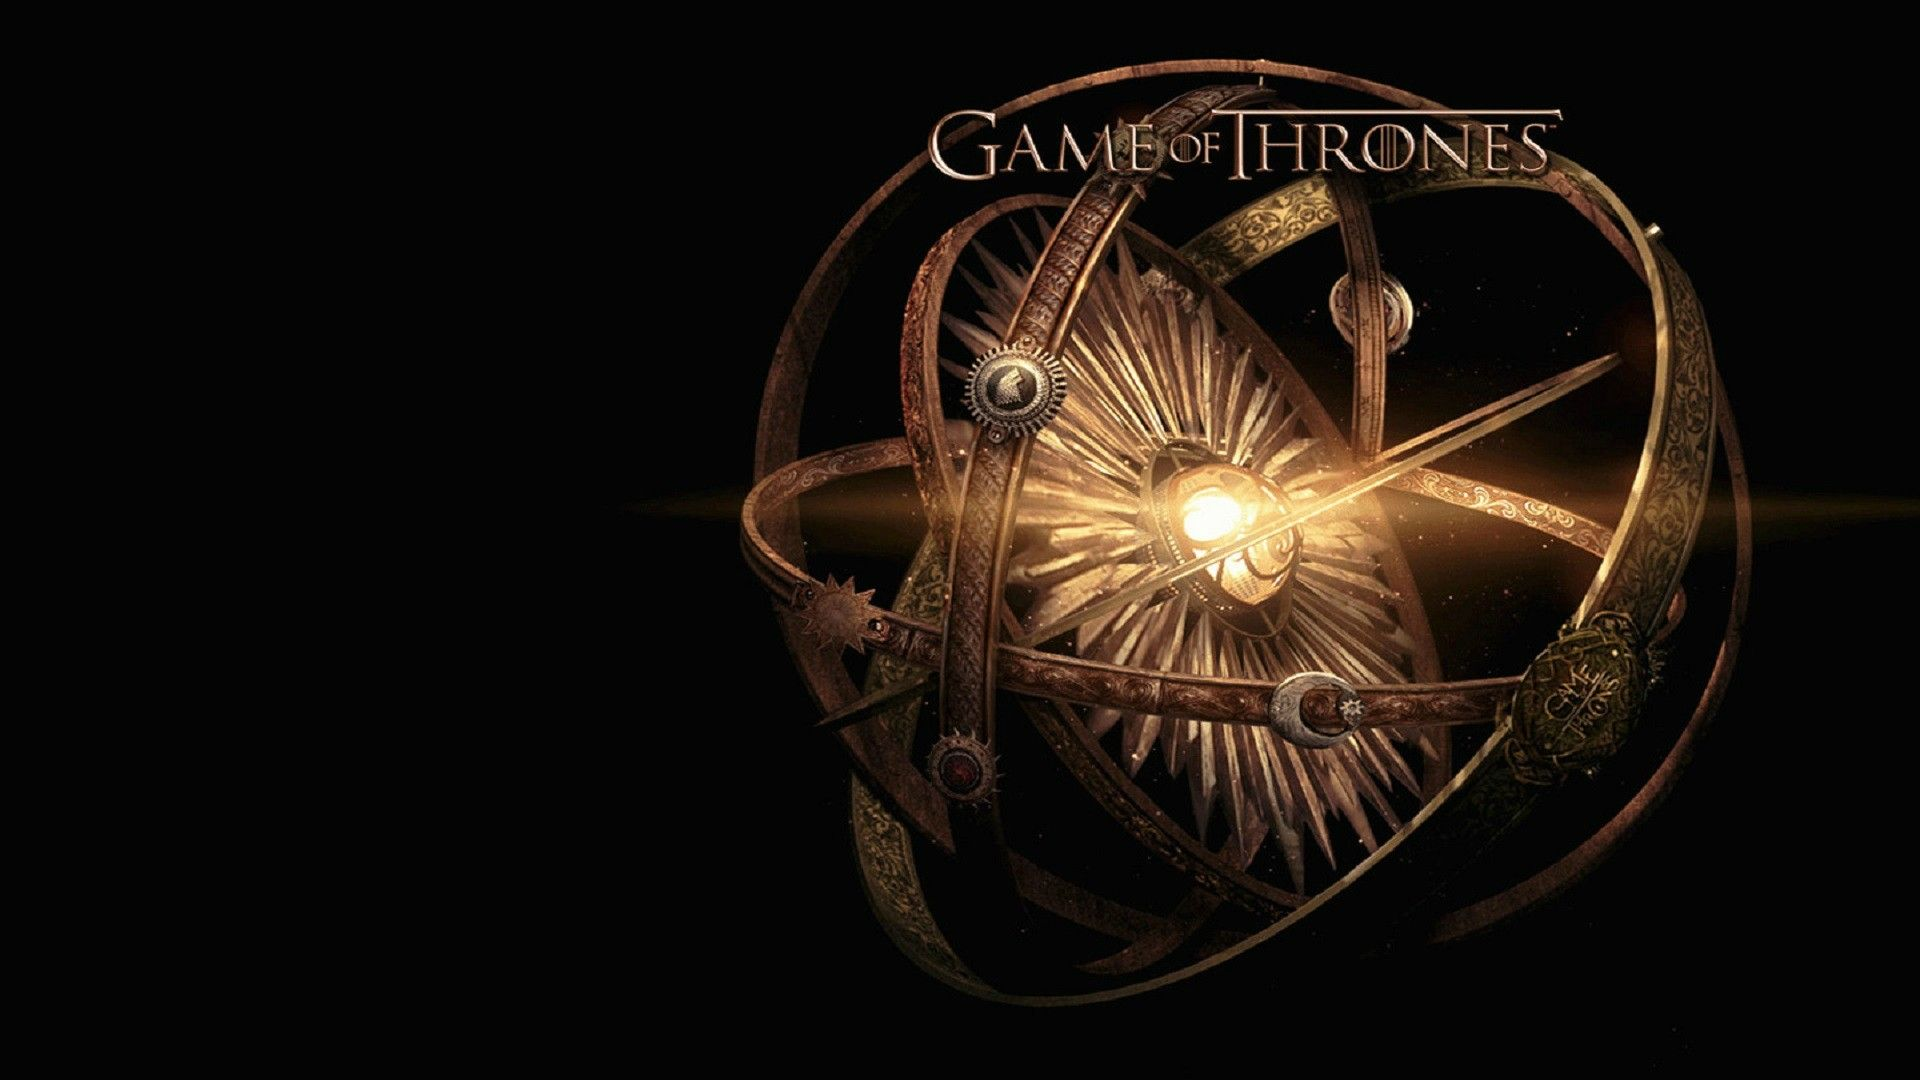 Game of Thrones logo orb